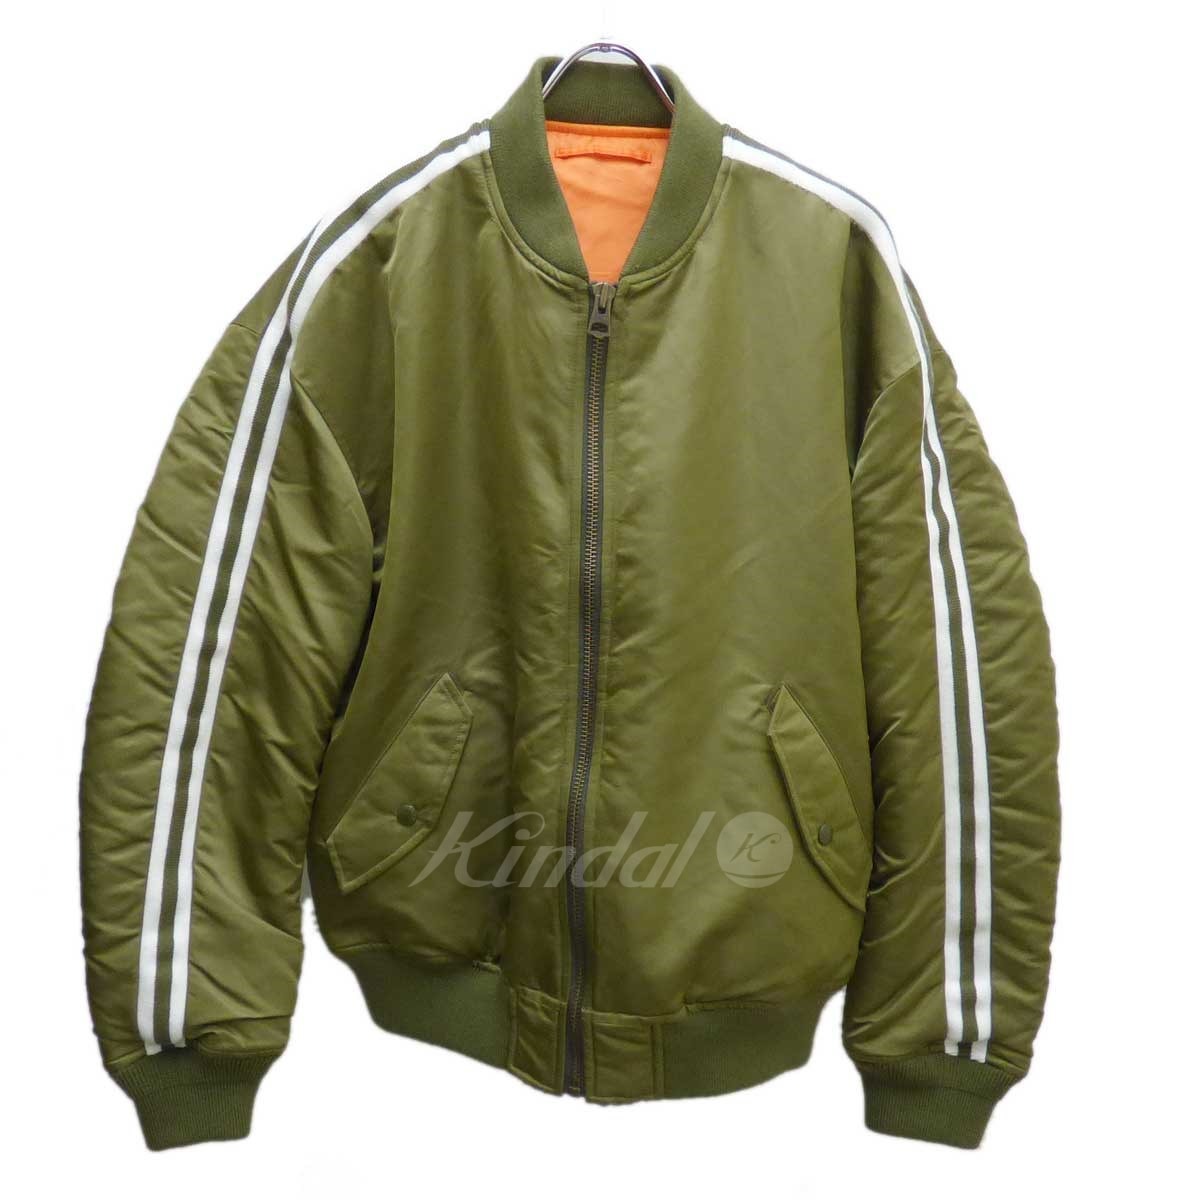 【中古】MR.GENTLE MAN LINE MA-1 JACKET 【送料無料】 【101719】 【KT1544】 【返品不可】